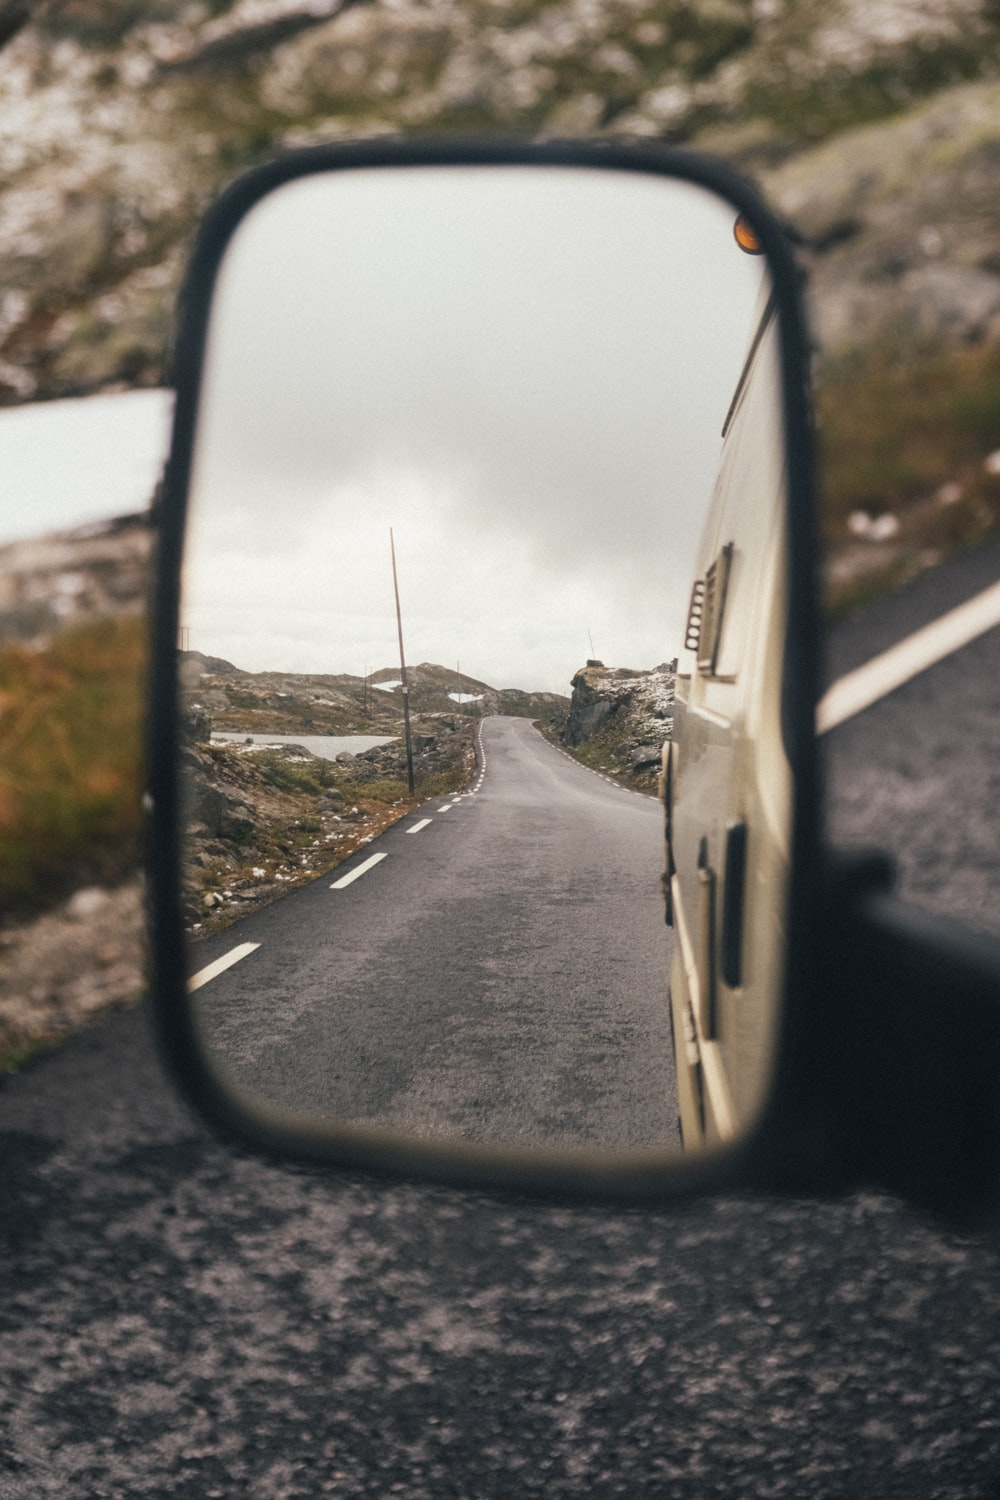 car side mirror showing white car